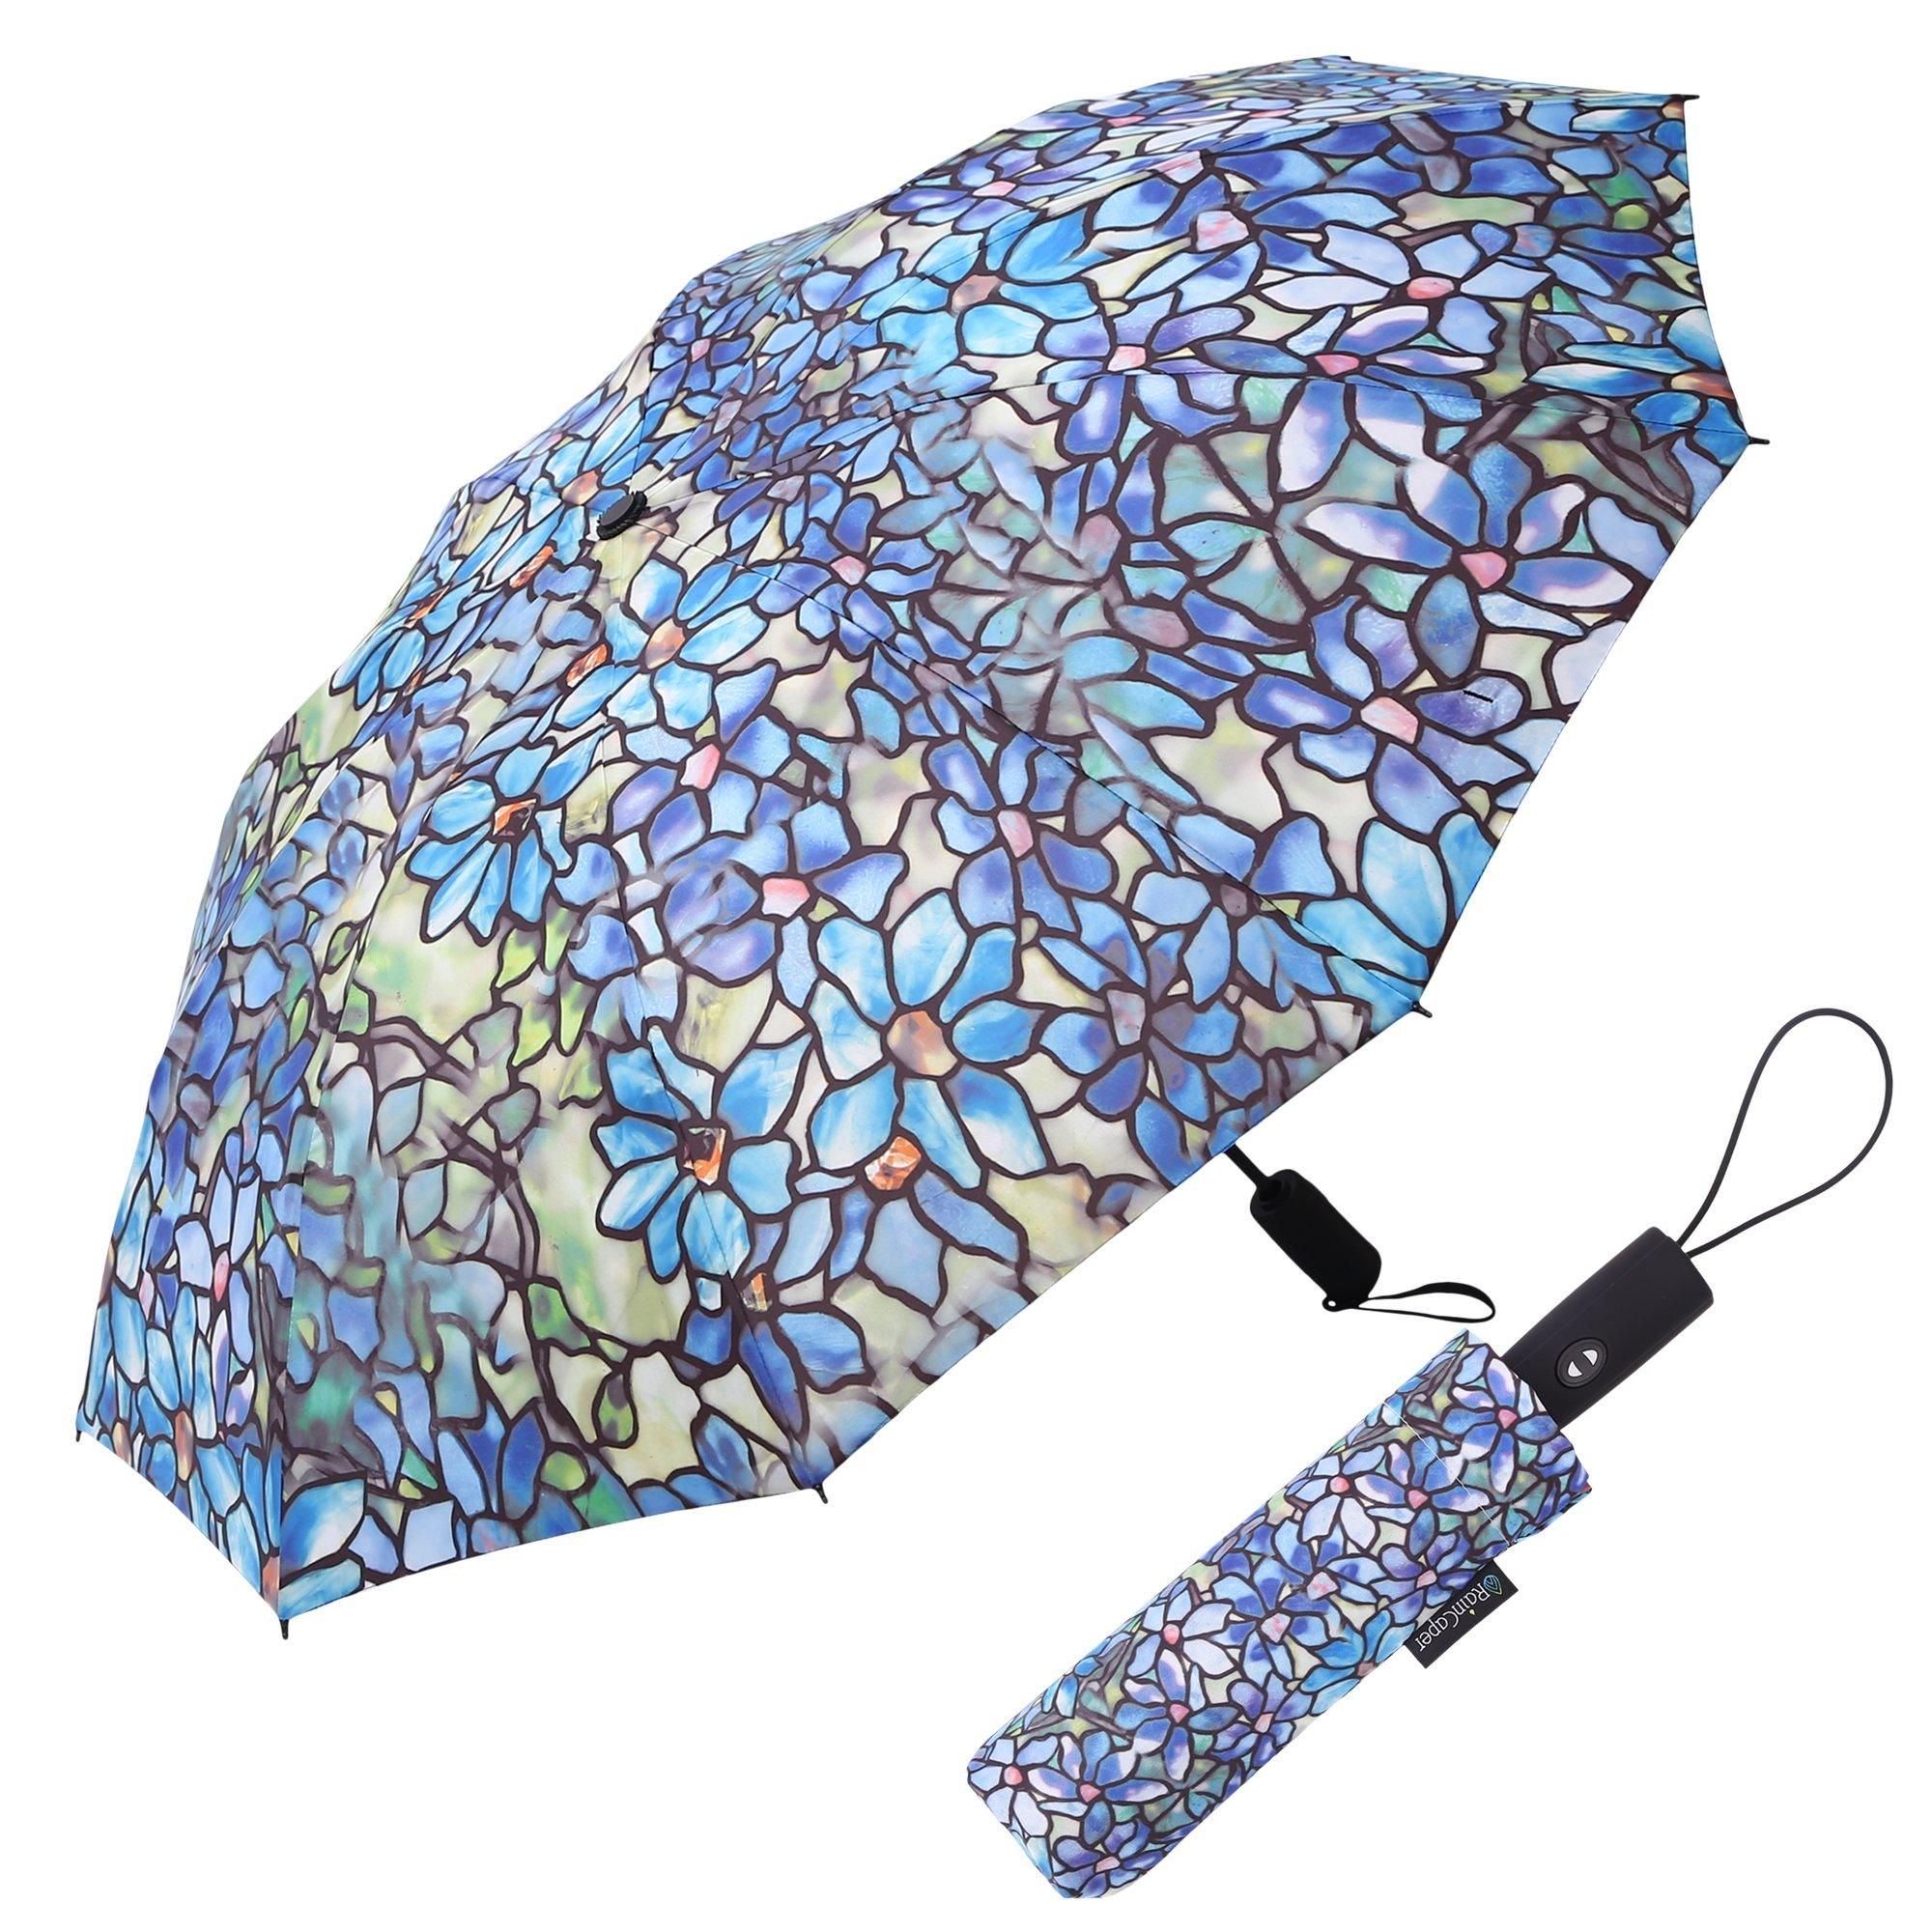 Image of a RainCaper Tiffany Clematis folded traveling umbrella shown both open and closed